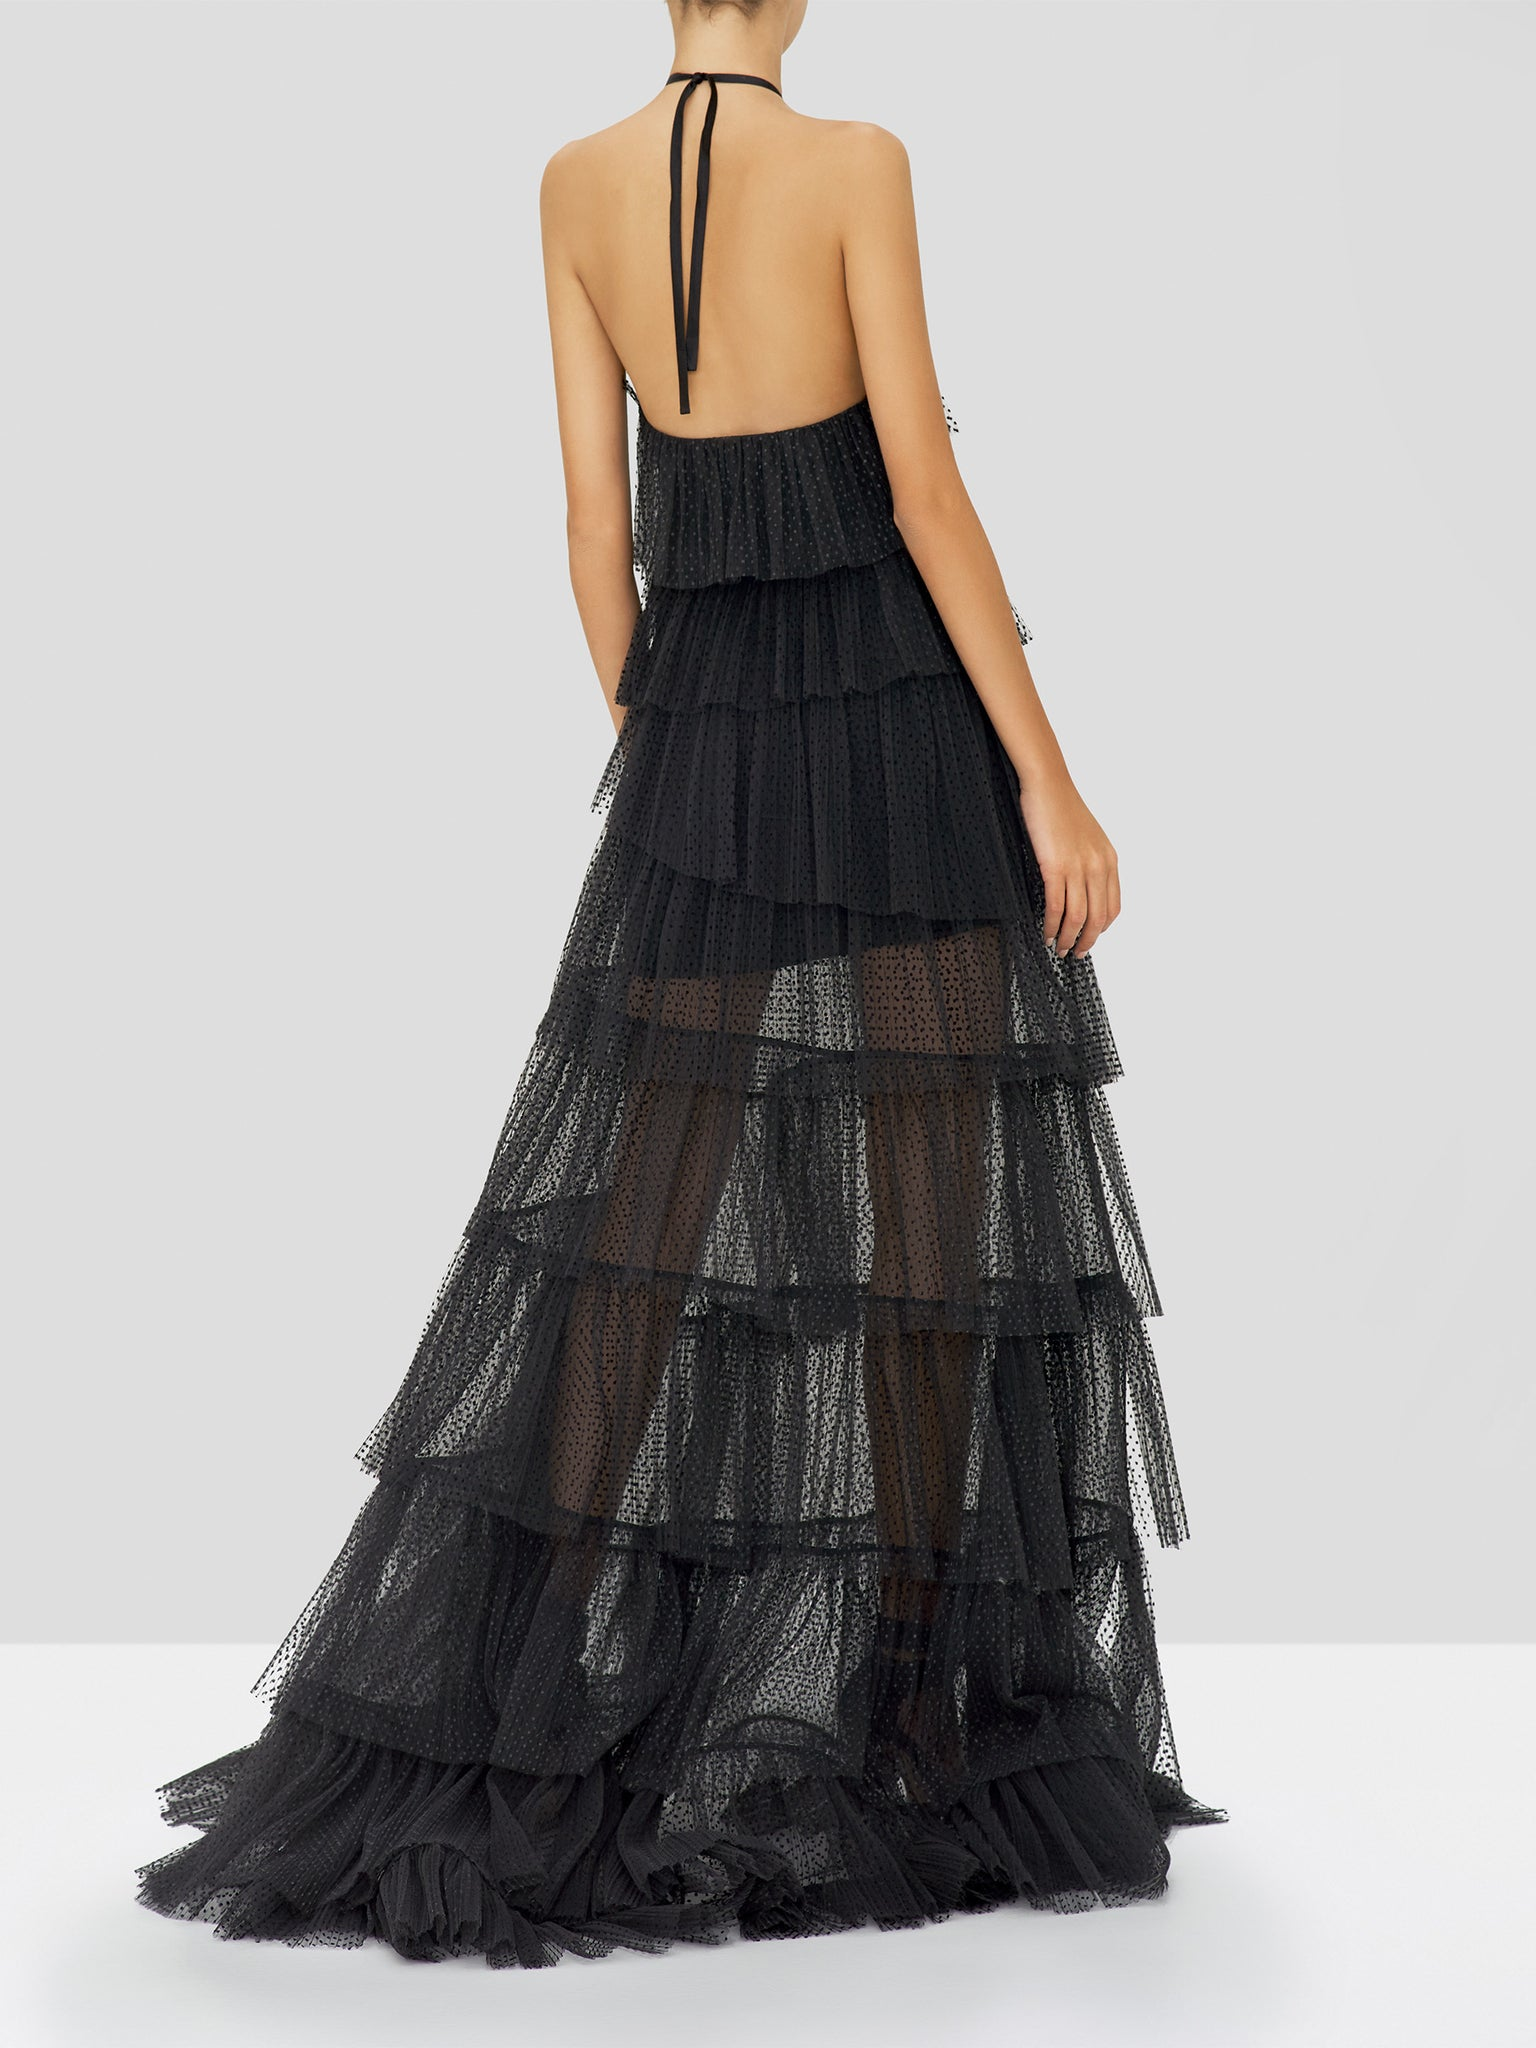 Alexis Justinia Dress in Black from the Holiday 2019 Ready To Wear Collection - Rear View